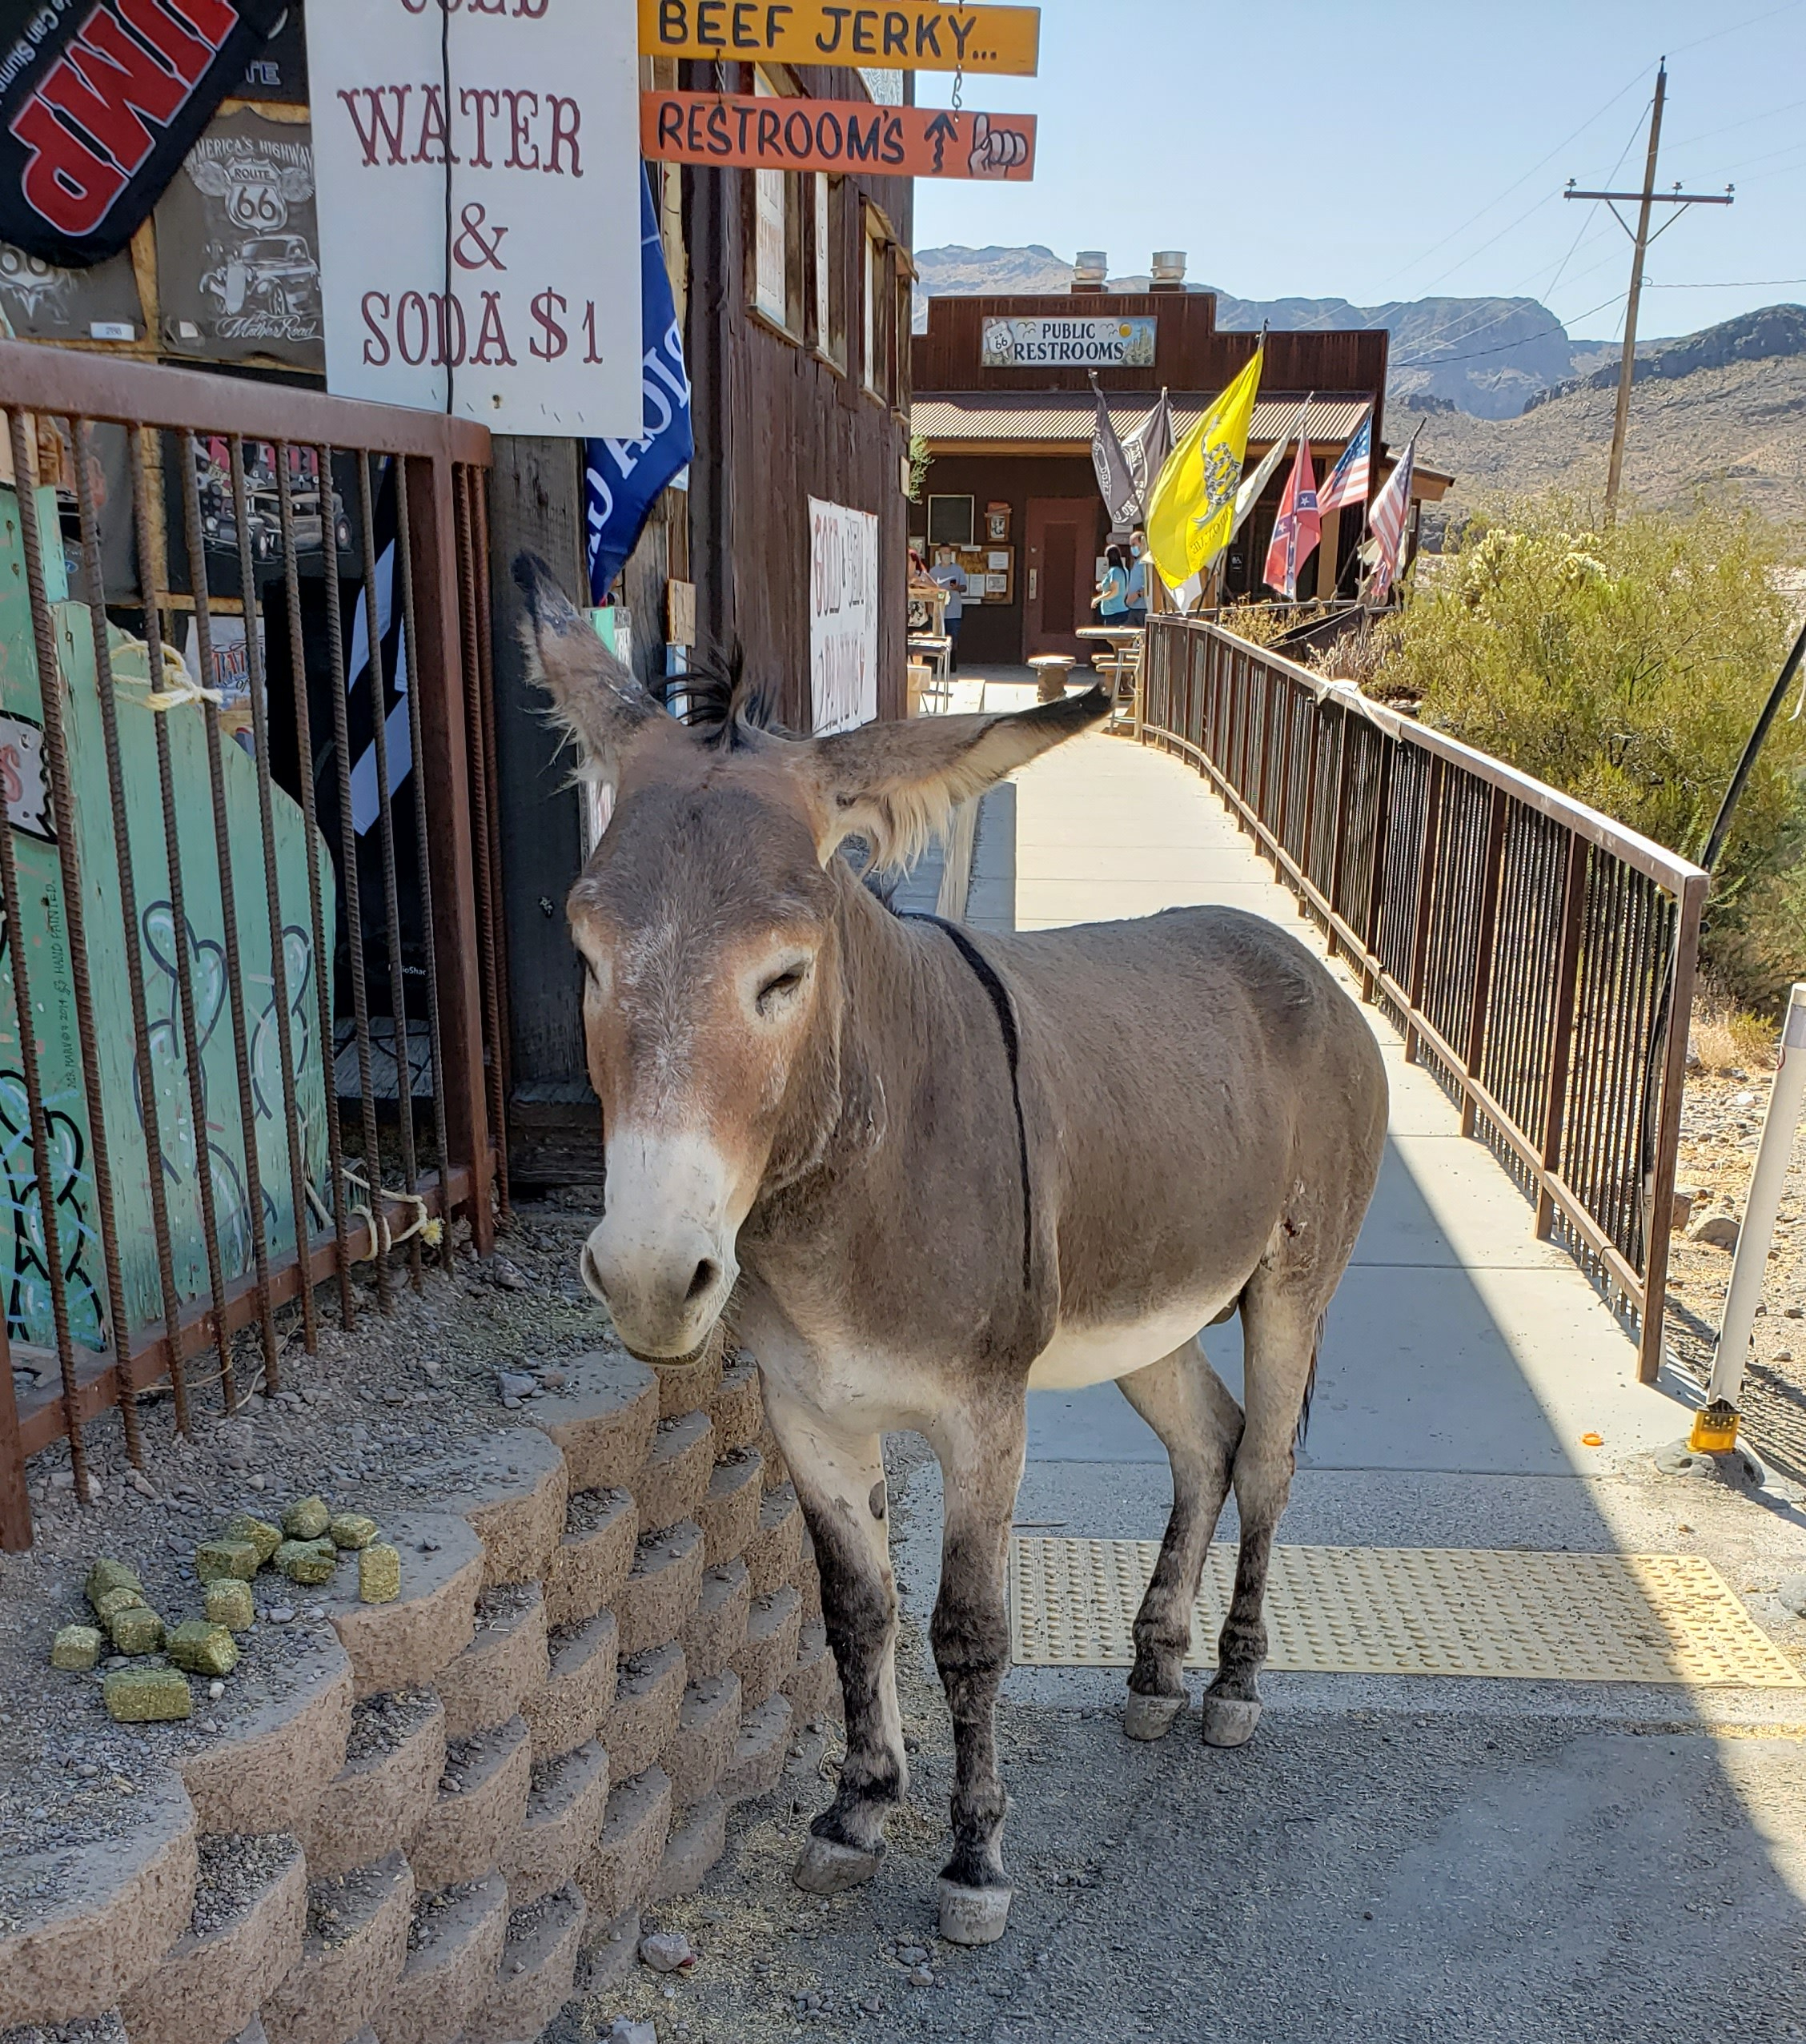 wild burro on sidewalk